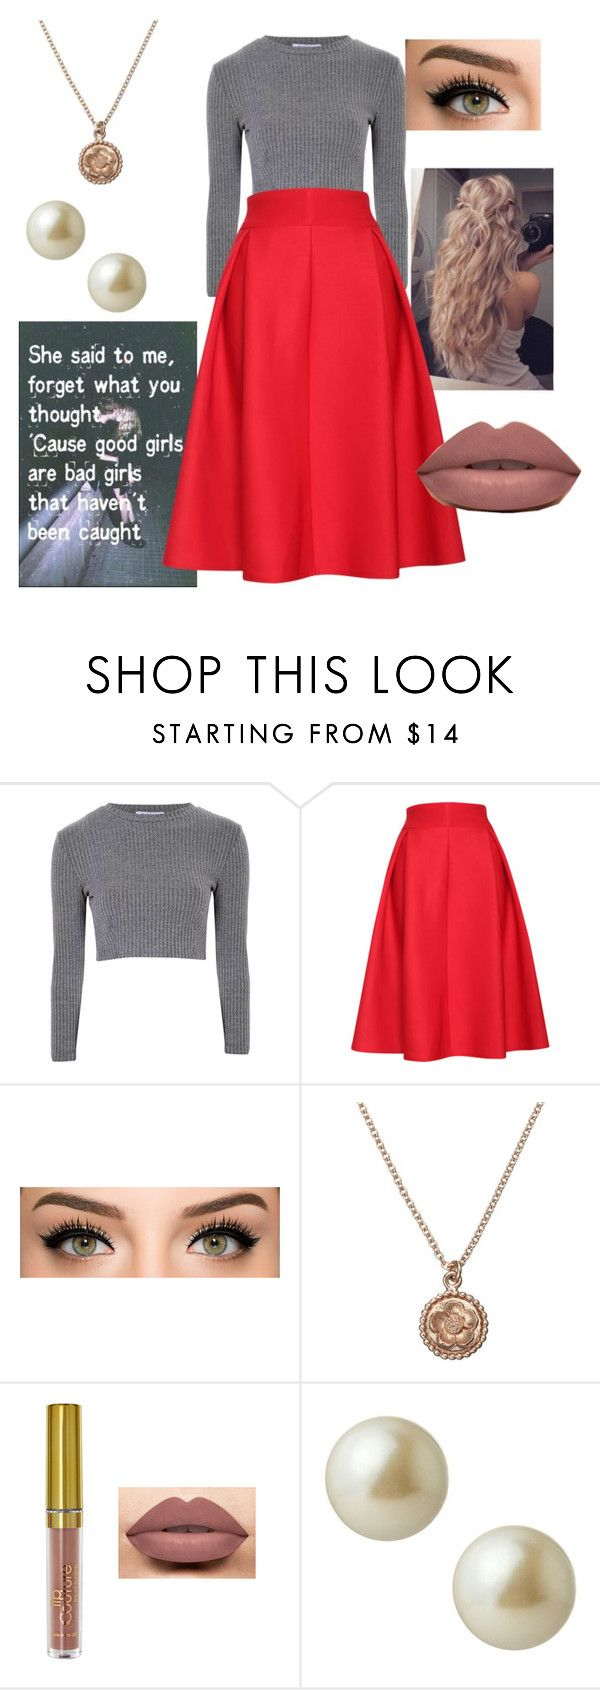 """Gianna De Luca"" by sarabeth12 ❤ liked on Polyvore featuring Glamorous, Relaxfeel, Alex Monroe and Carolee"